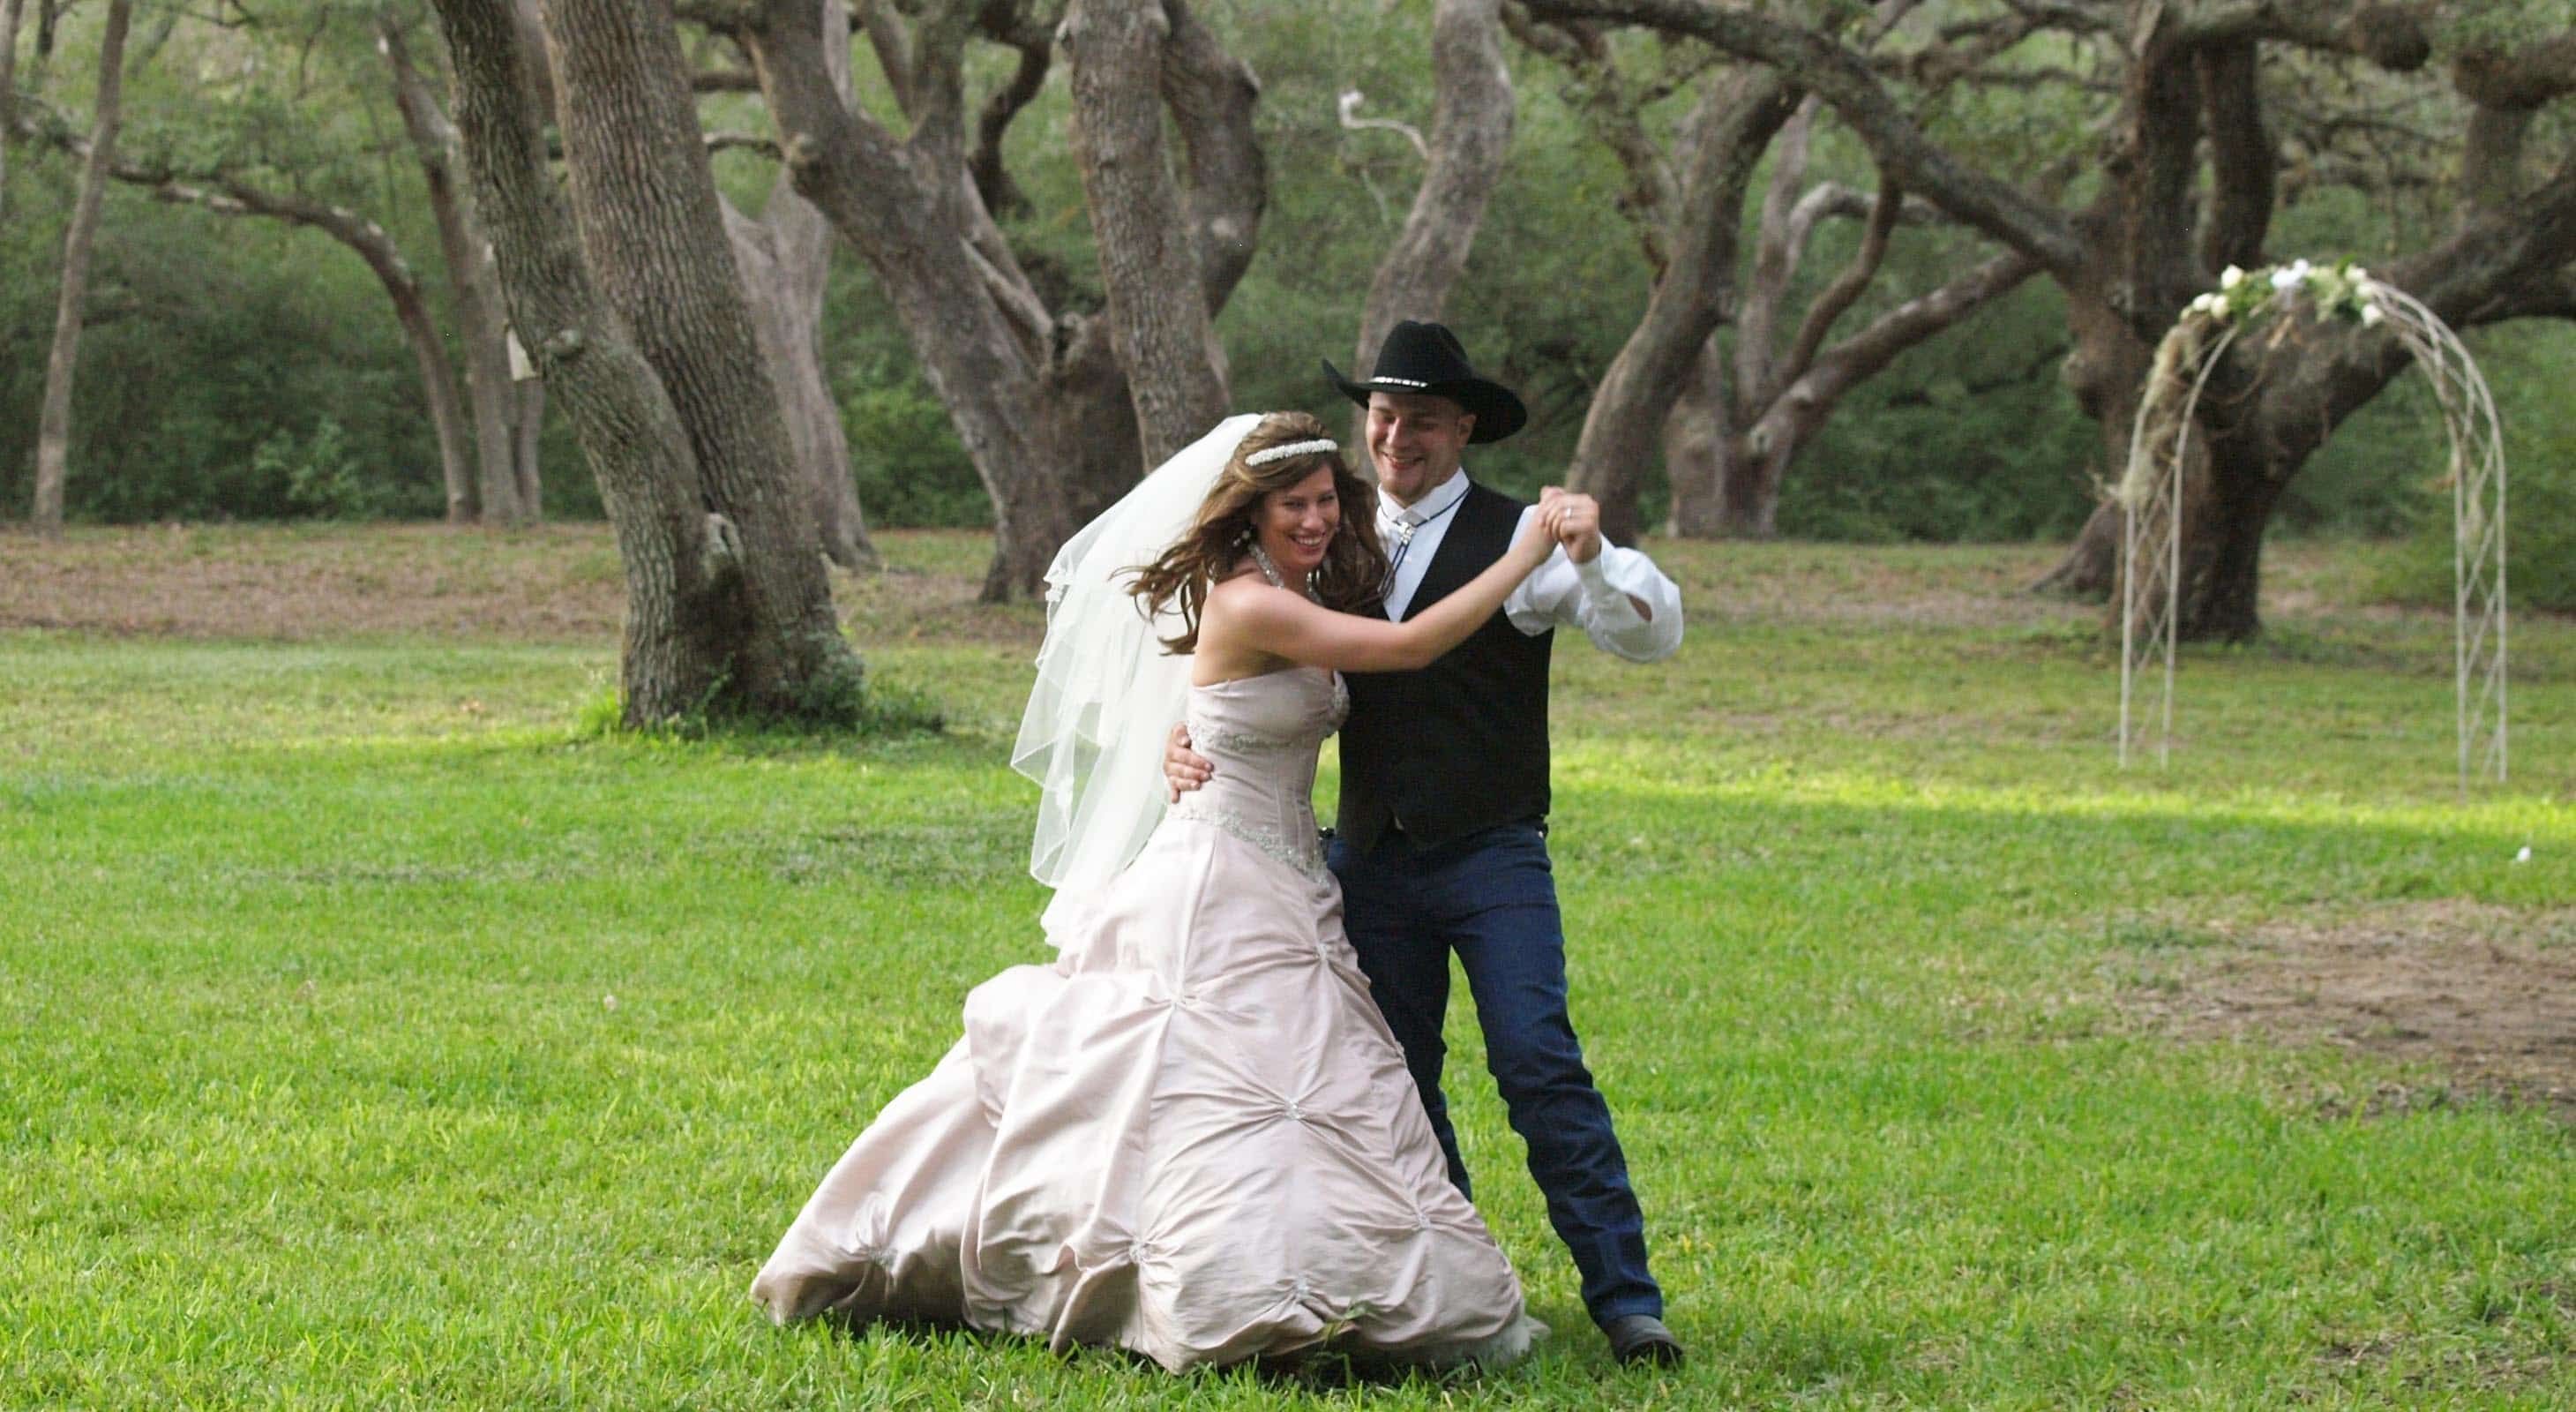 A bride and groom dancing under oaks at a Texas ranch wedding